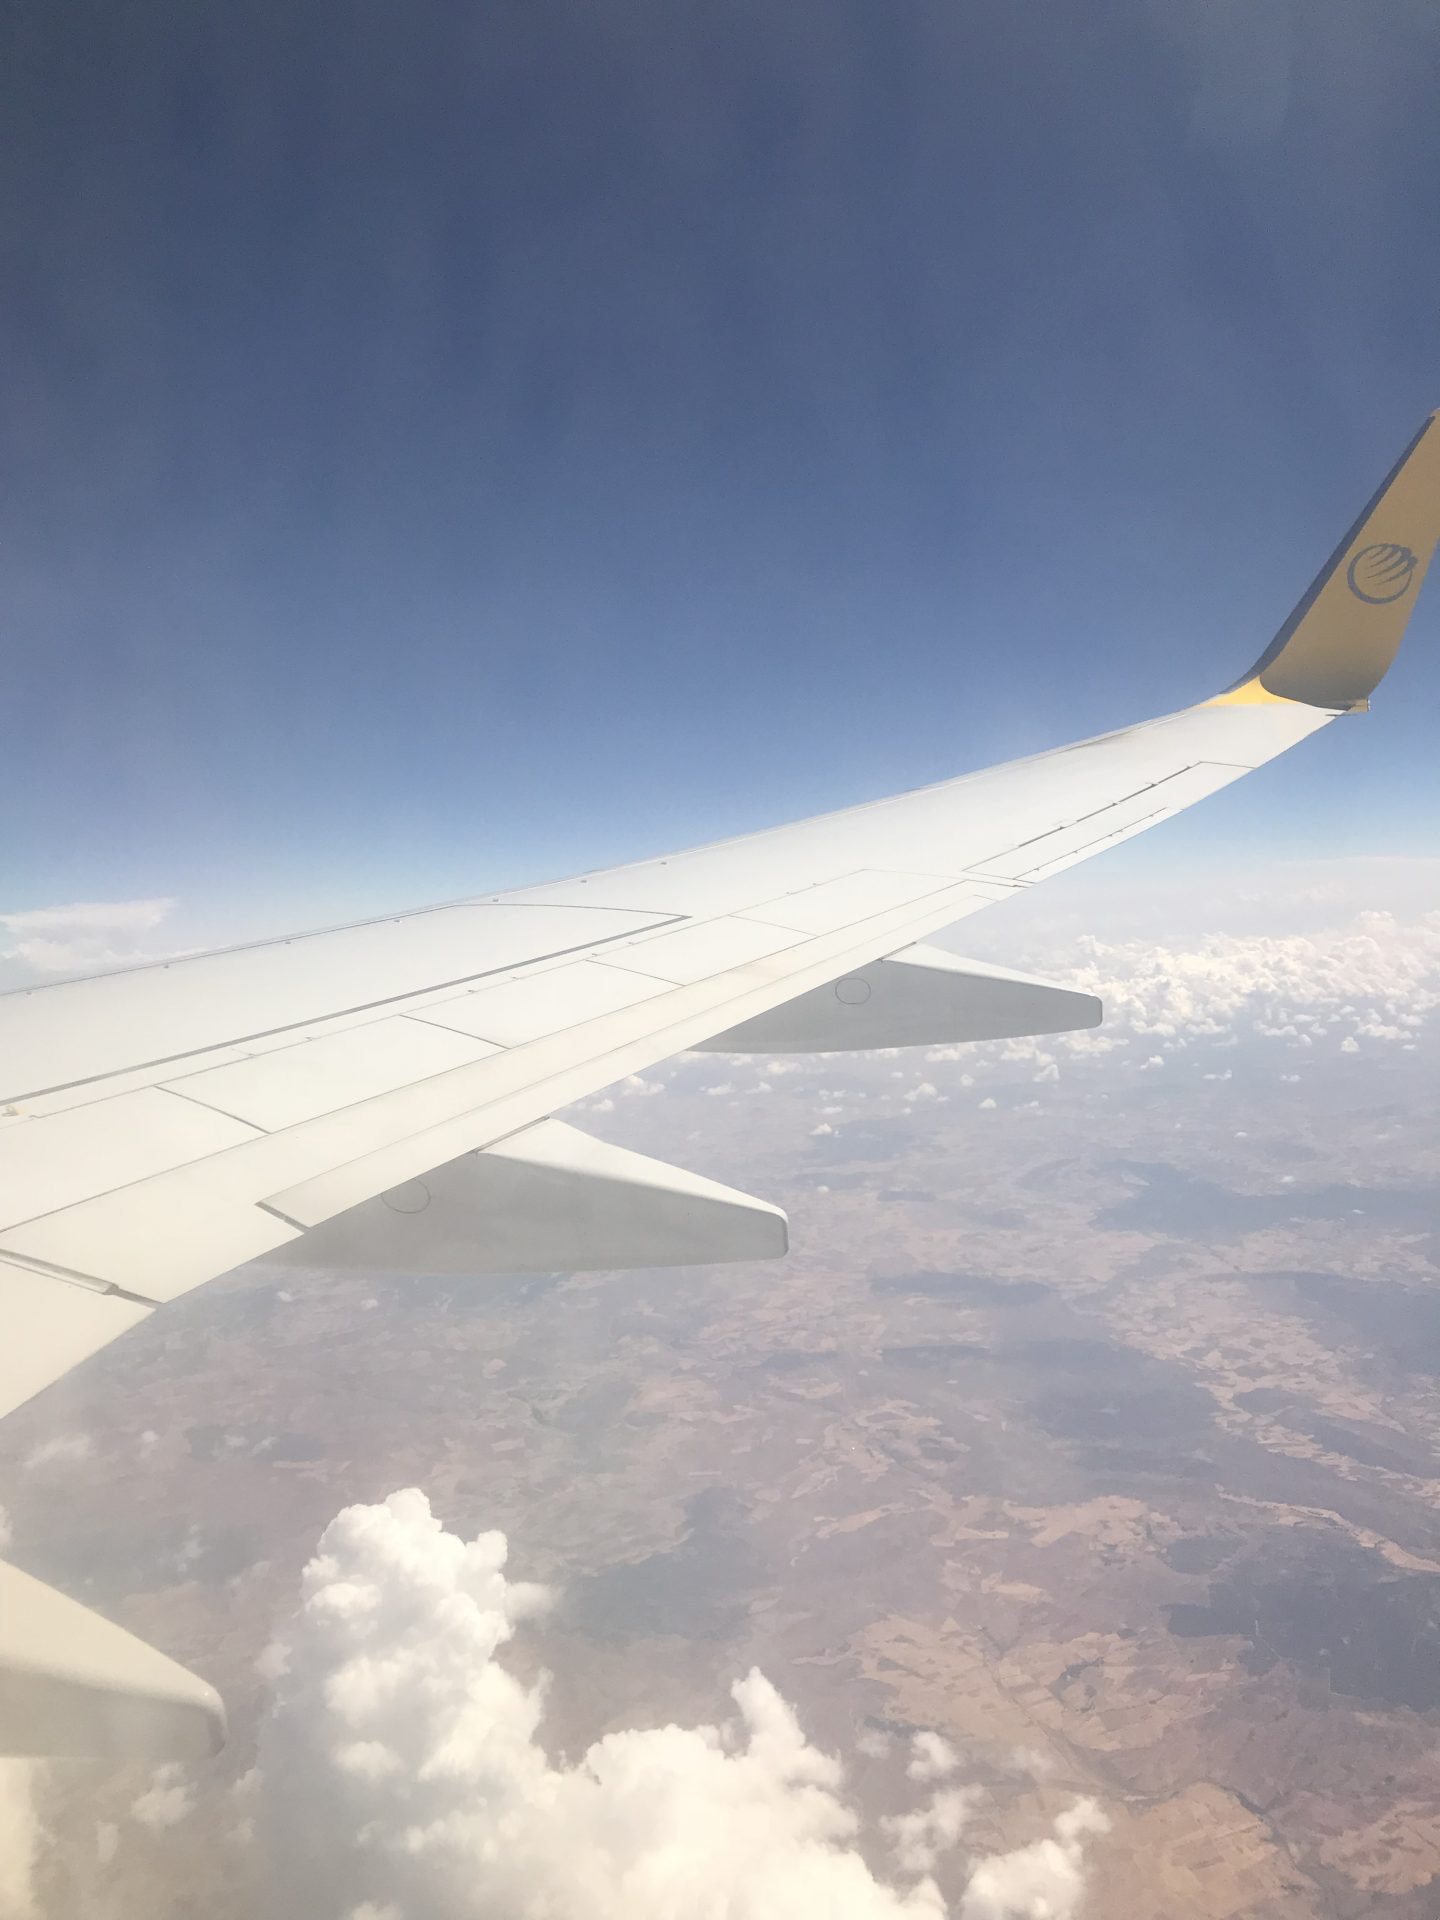 Tips for dealing with fear of flying